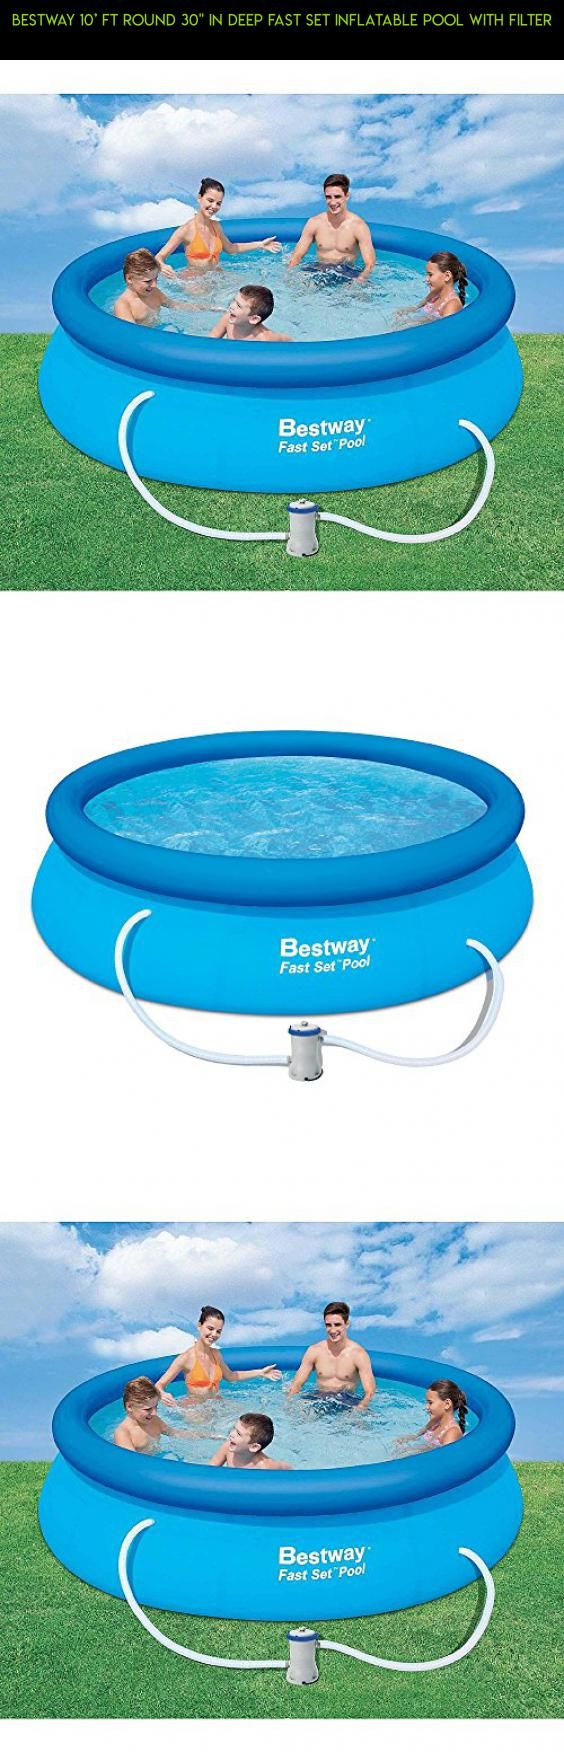 """Bestway 10' ft Round 30"""" in Deep Fast Set Inflatable Pool with Filter #plans #racing #parts #tech #technology #inches #products #drone #deep #gadgets #shopping #camera #pools #fpv #30 #kit"""